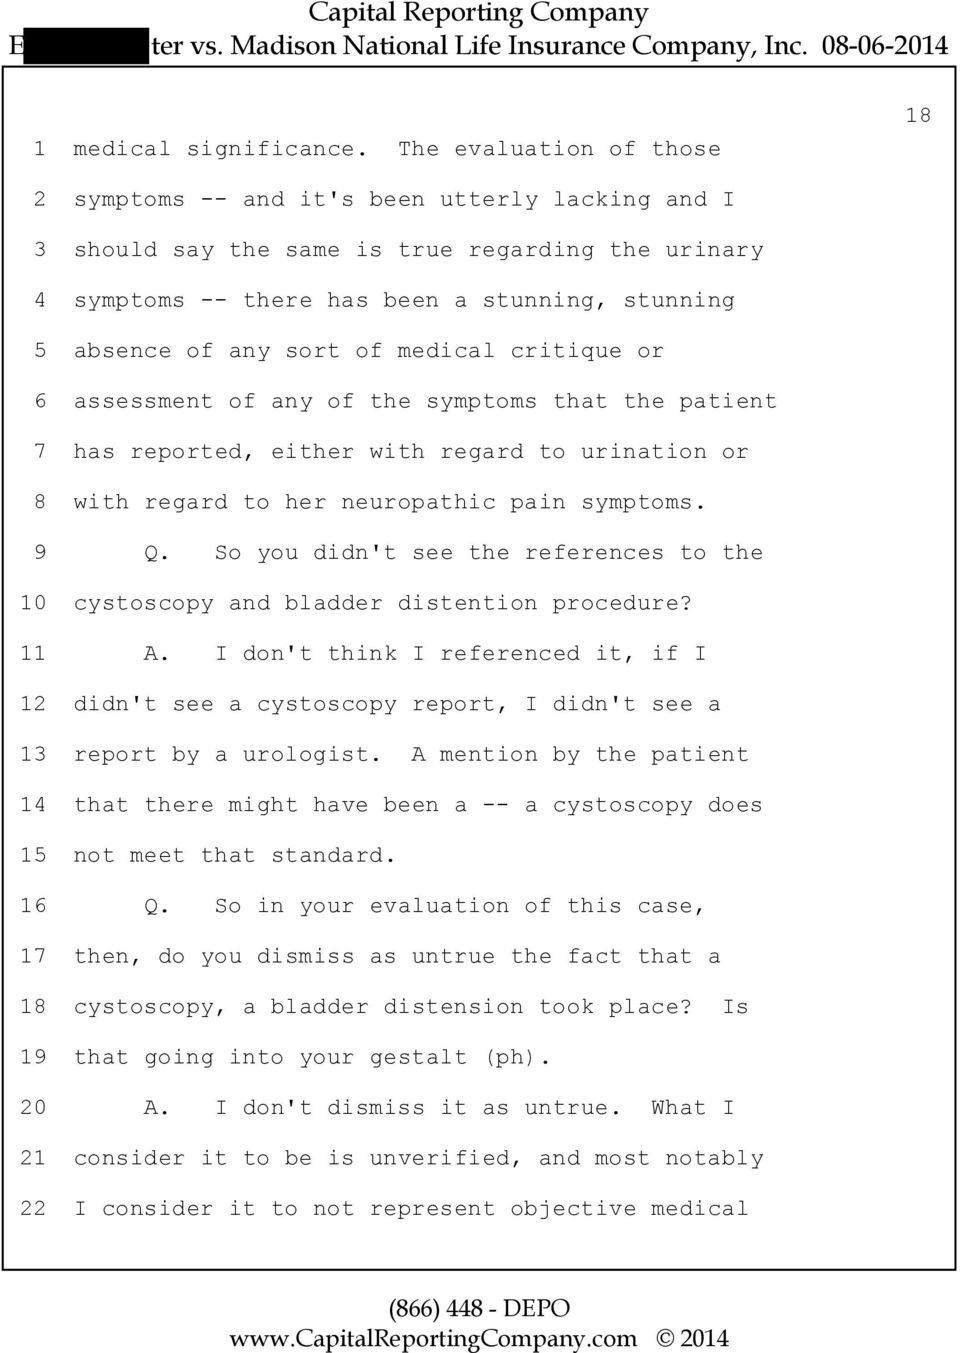 sort of medical critique or 6 assessment of any of the symptoms that the patient 7 has reported, either with regard to urination or 8 with regard to her neuropathic pain symptoms. 9 Q.